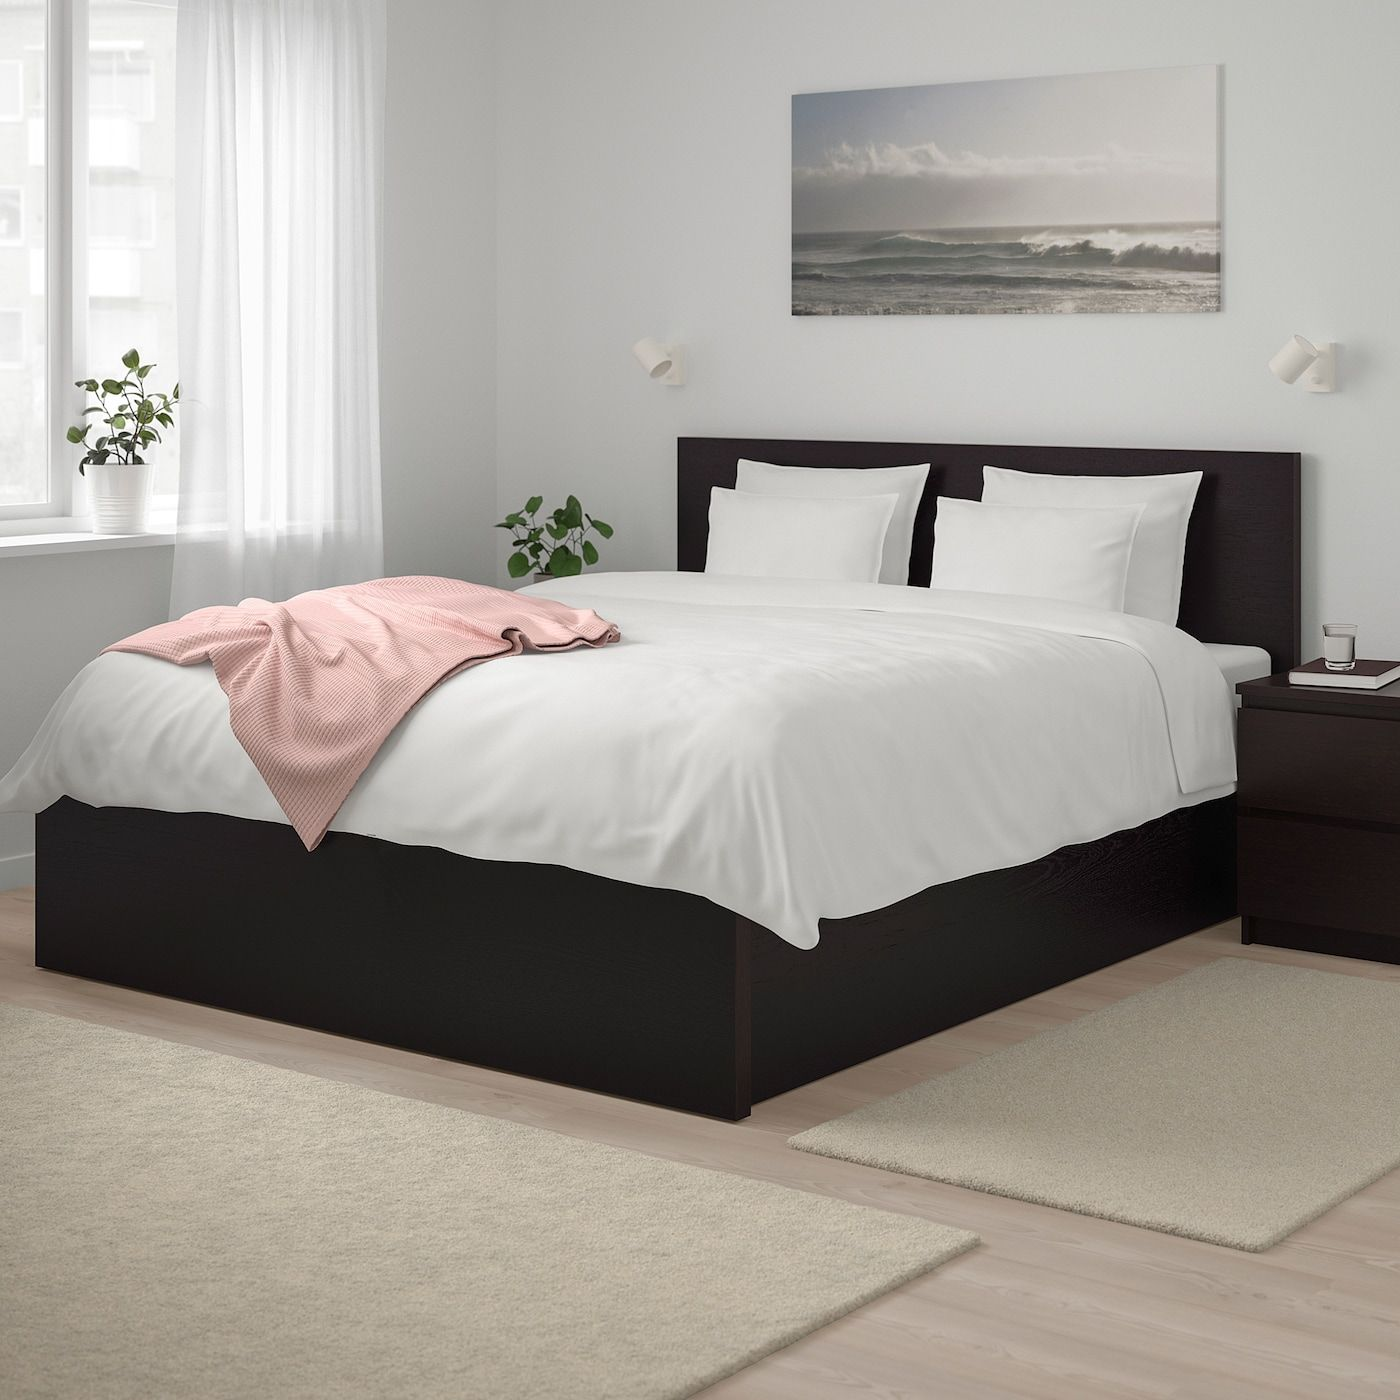 Malm Storage Bed Black Brown Full Double Ikea In 2020 Black Bedding Brown Furniture Bedroom Malm Bed